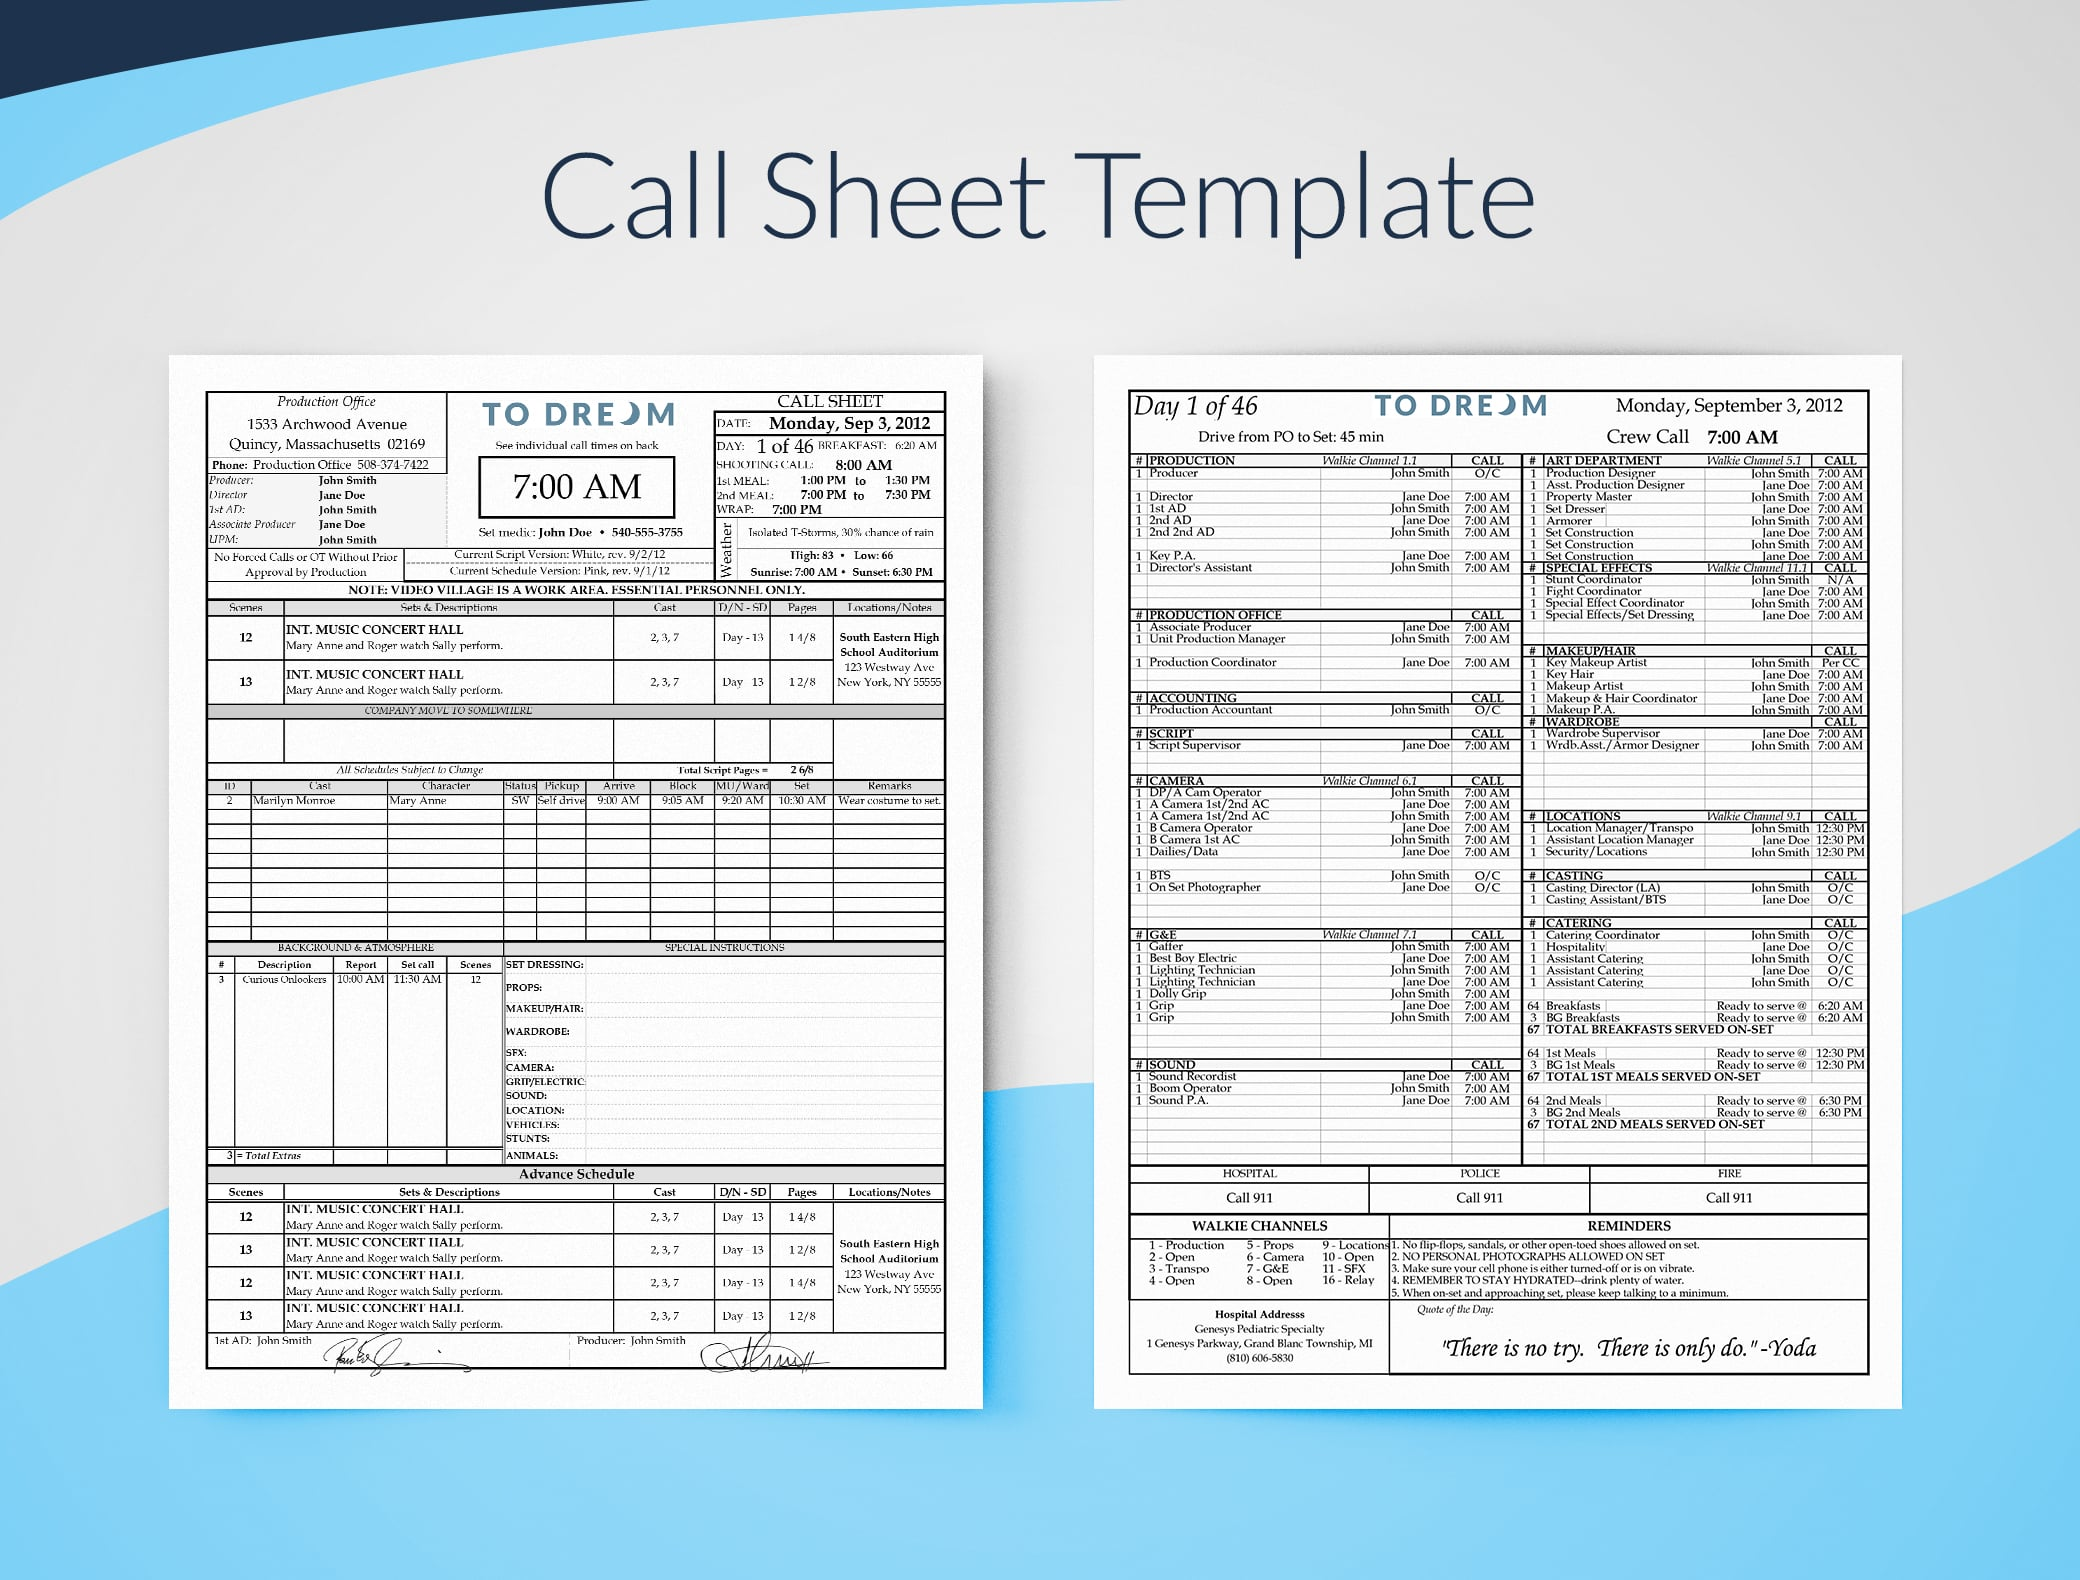 production call sheet template excel